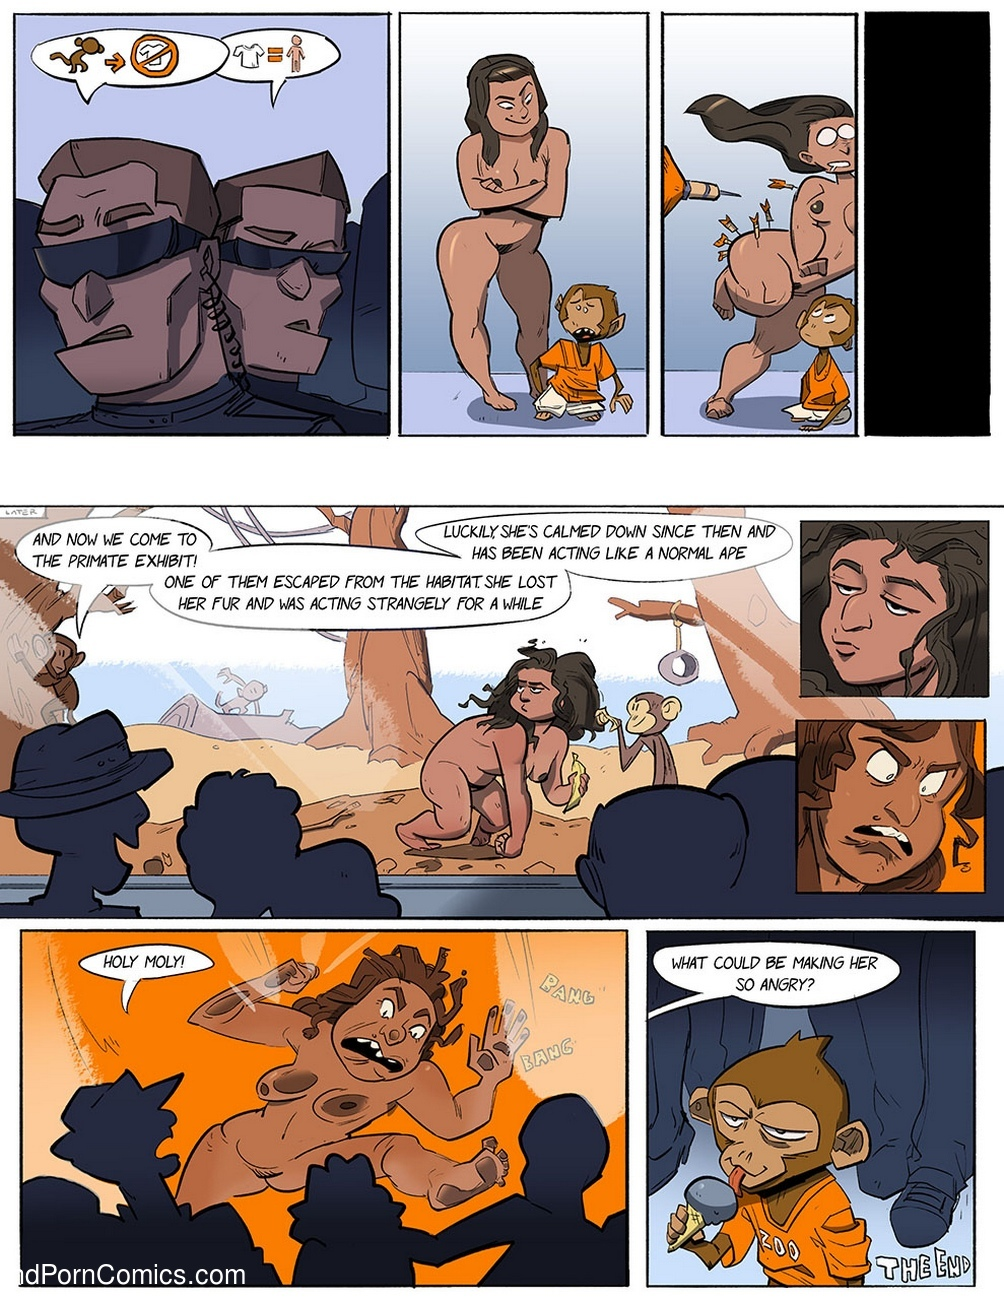 Monkey Business Sex Comic